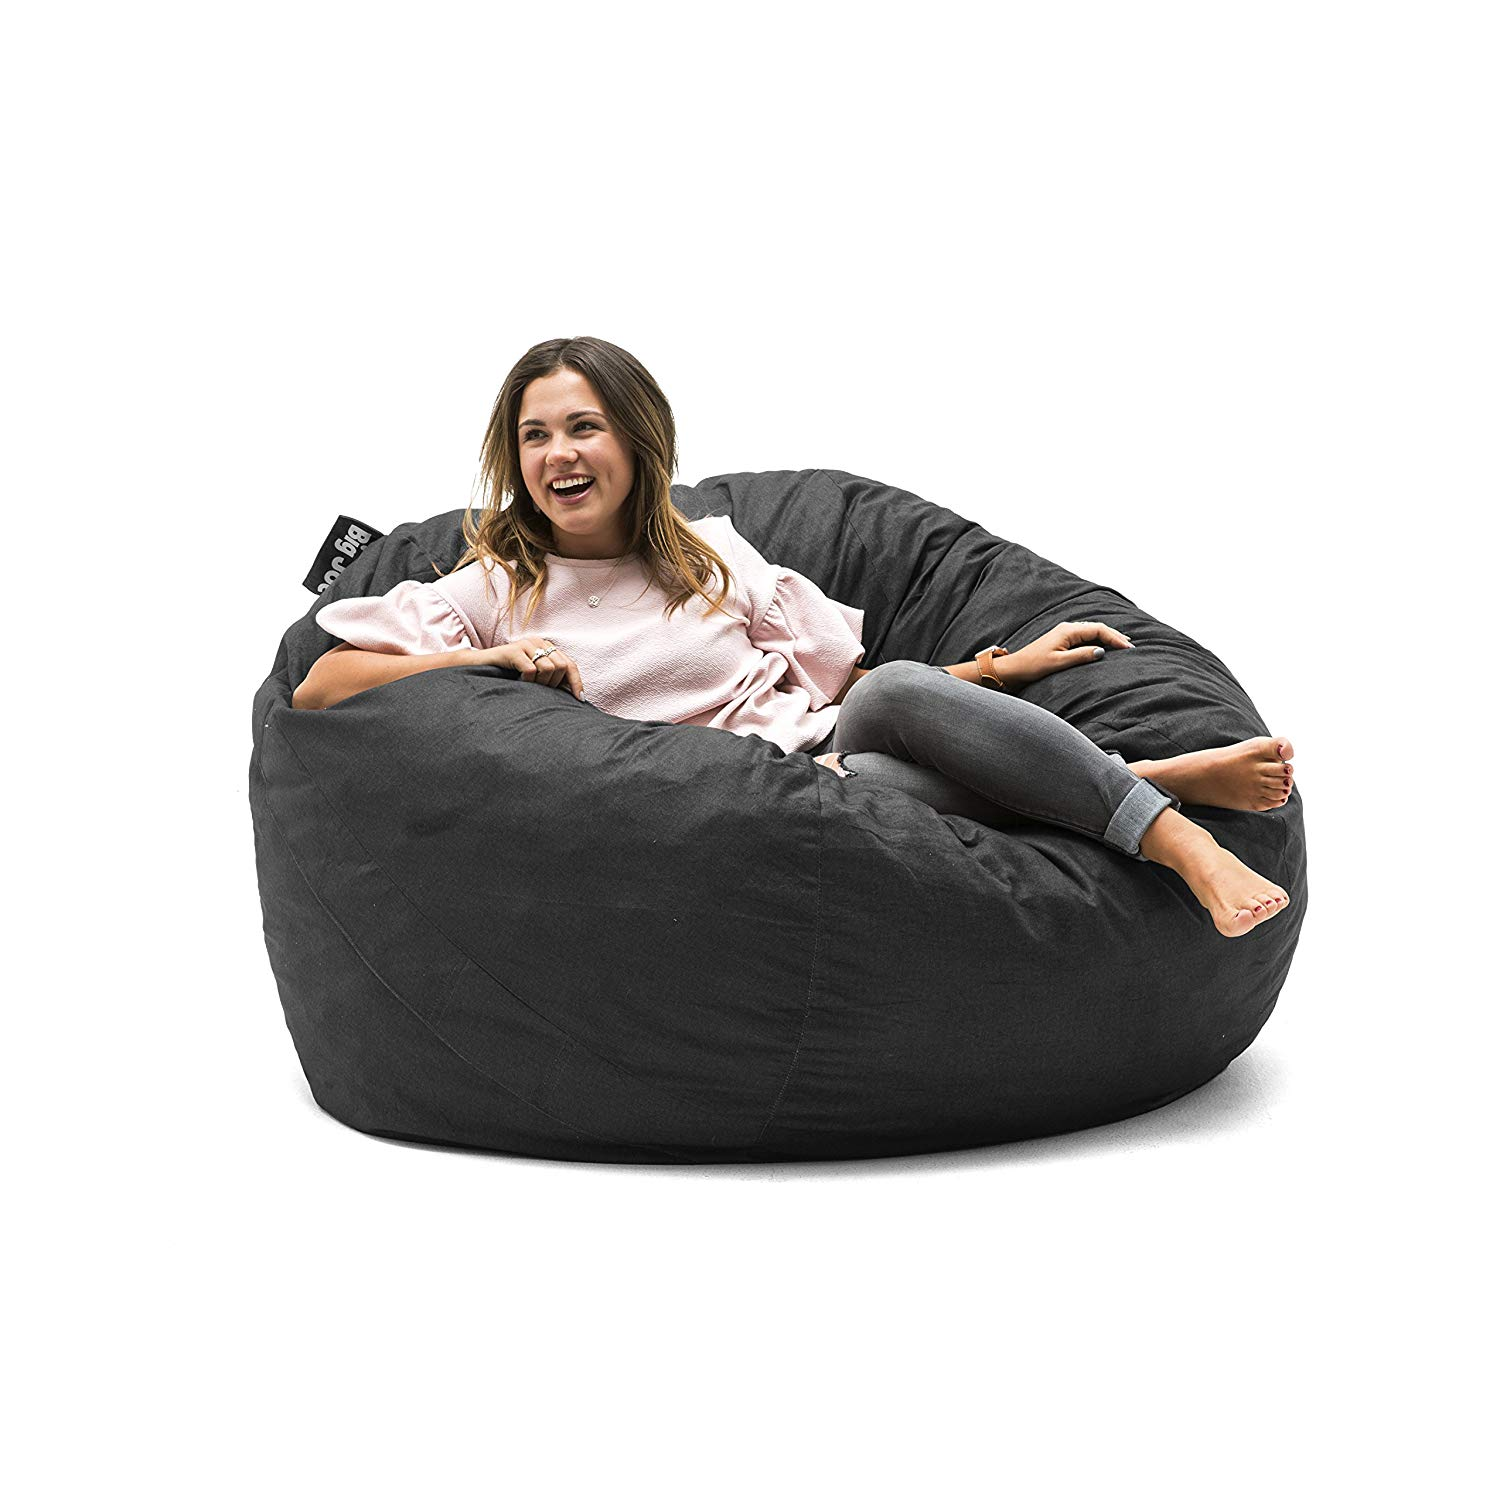 Big Joe Fuf Foam Filled, Large Bean Bag Chair